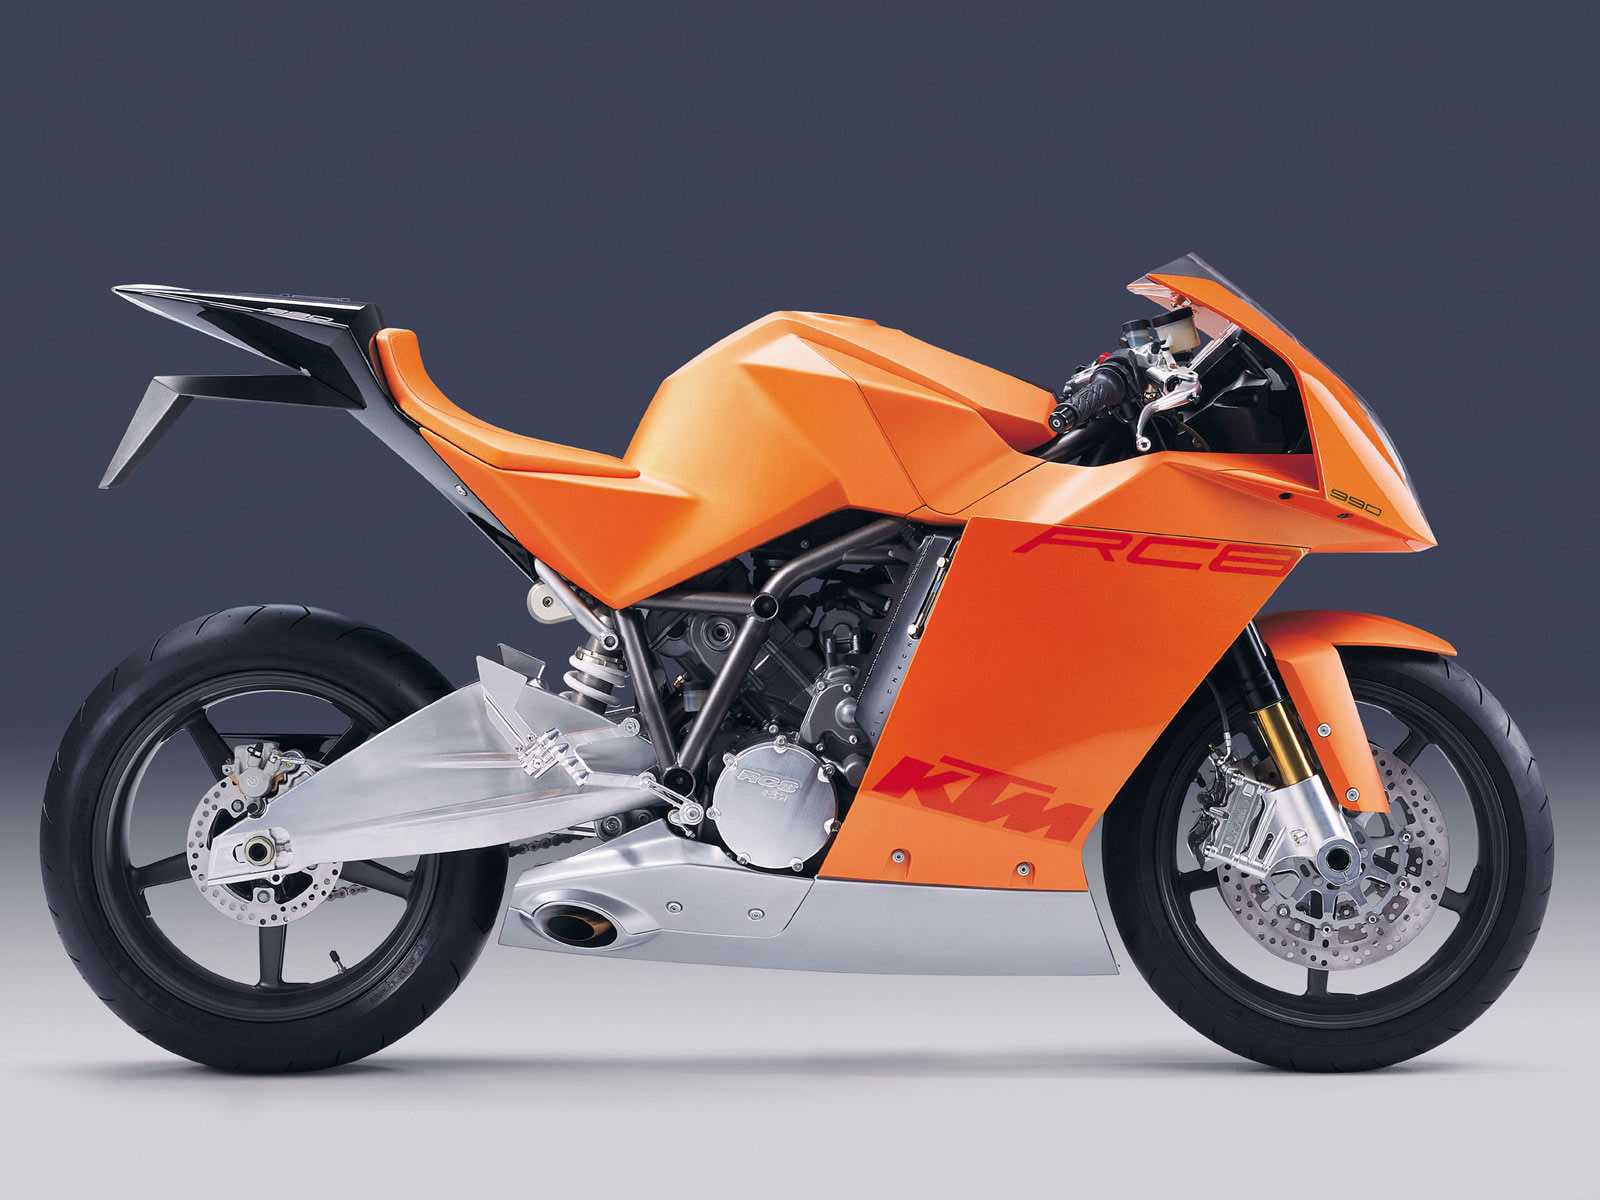 KTM Motorcycle Concept wallpaper background